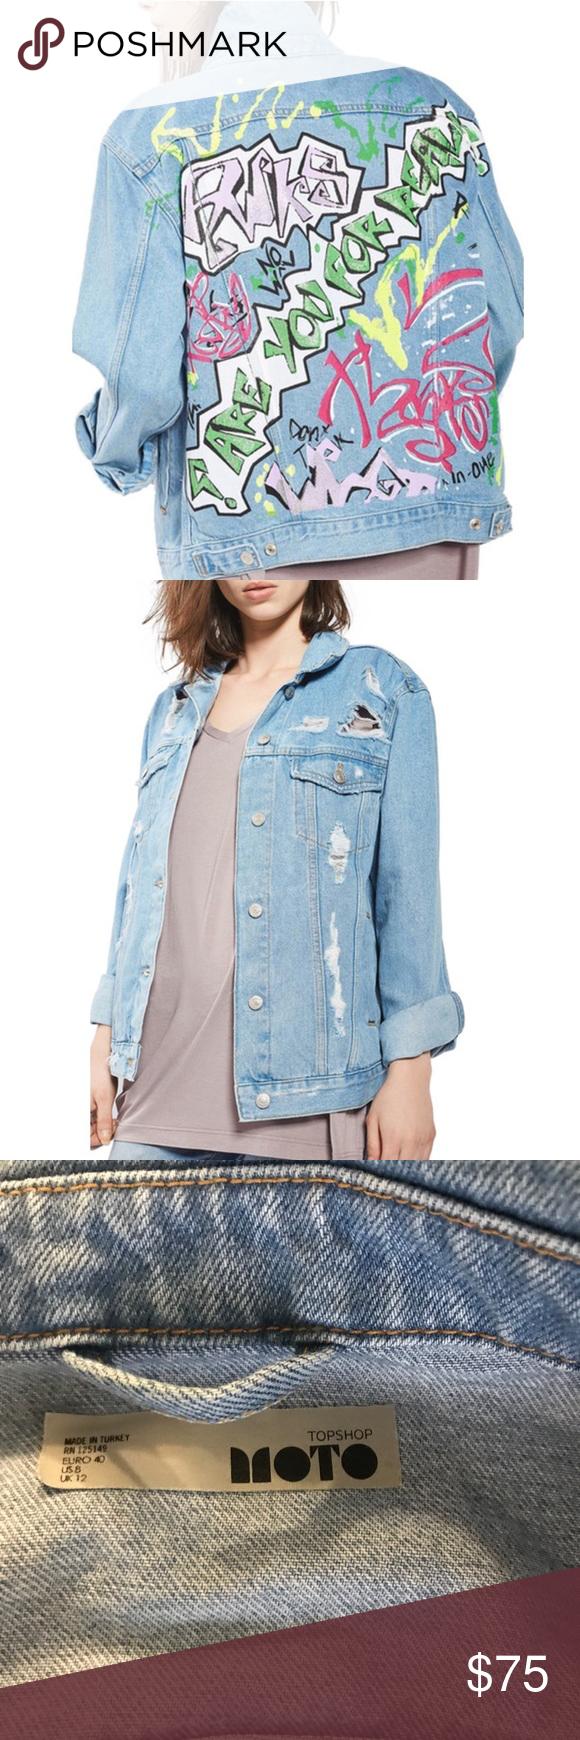 "Topshop Moto Graffiti Denim Jacket This is a super cool and UNIQUE jacket, so Fun! It is a ripped, oversized light wash denim jacket with bright graffiti on the back. Make a statement as you walk away!  This jacket features point collar, long sleeves with button cuffs, chest button-flap pockets and side welt pockets. 100% cotton. It is US size 8. Bust 36.25"" Waist 29"" and Hip 38.25"" It has only worn a few times, like new, excellent condition. Offers are welcome! Topshop Jackets & Coats Jean…"